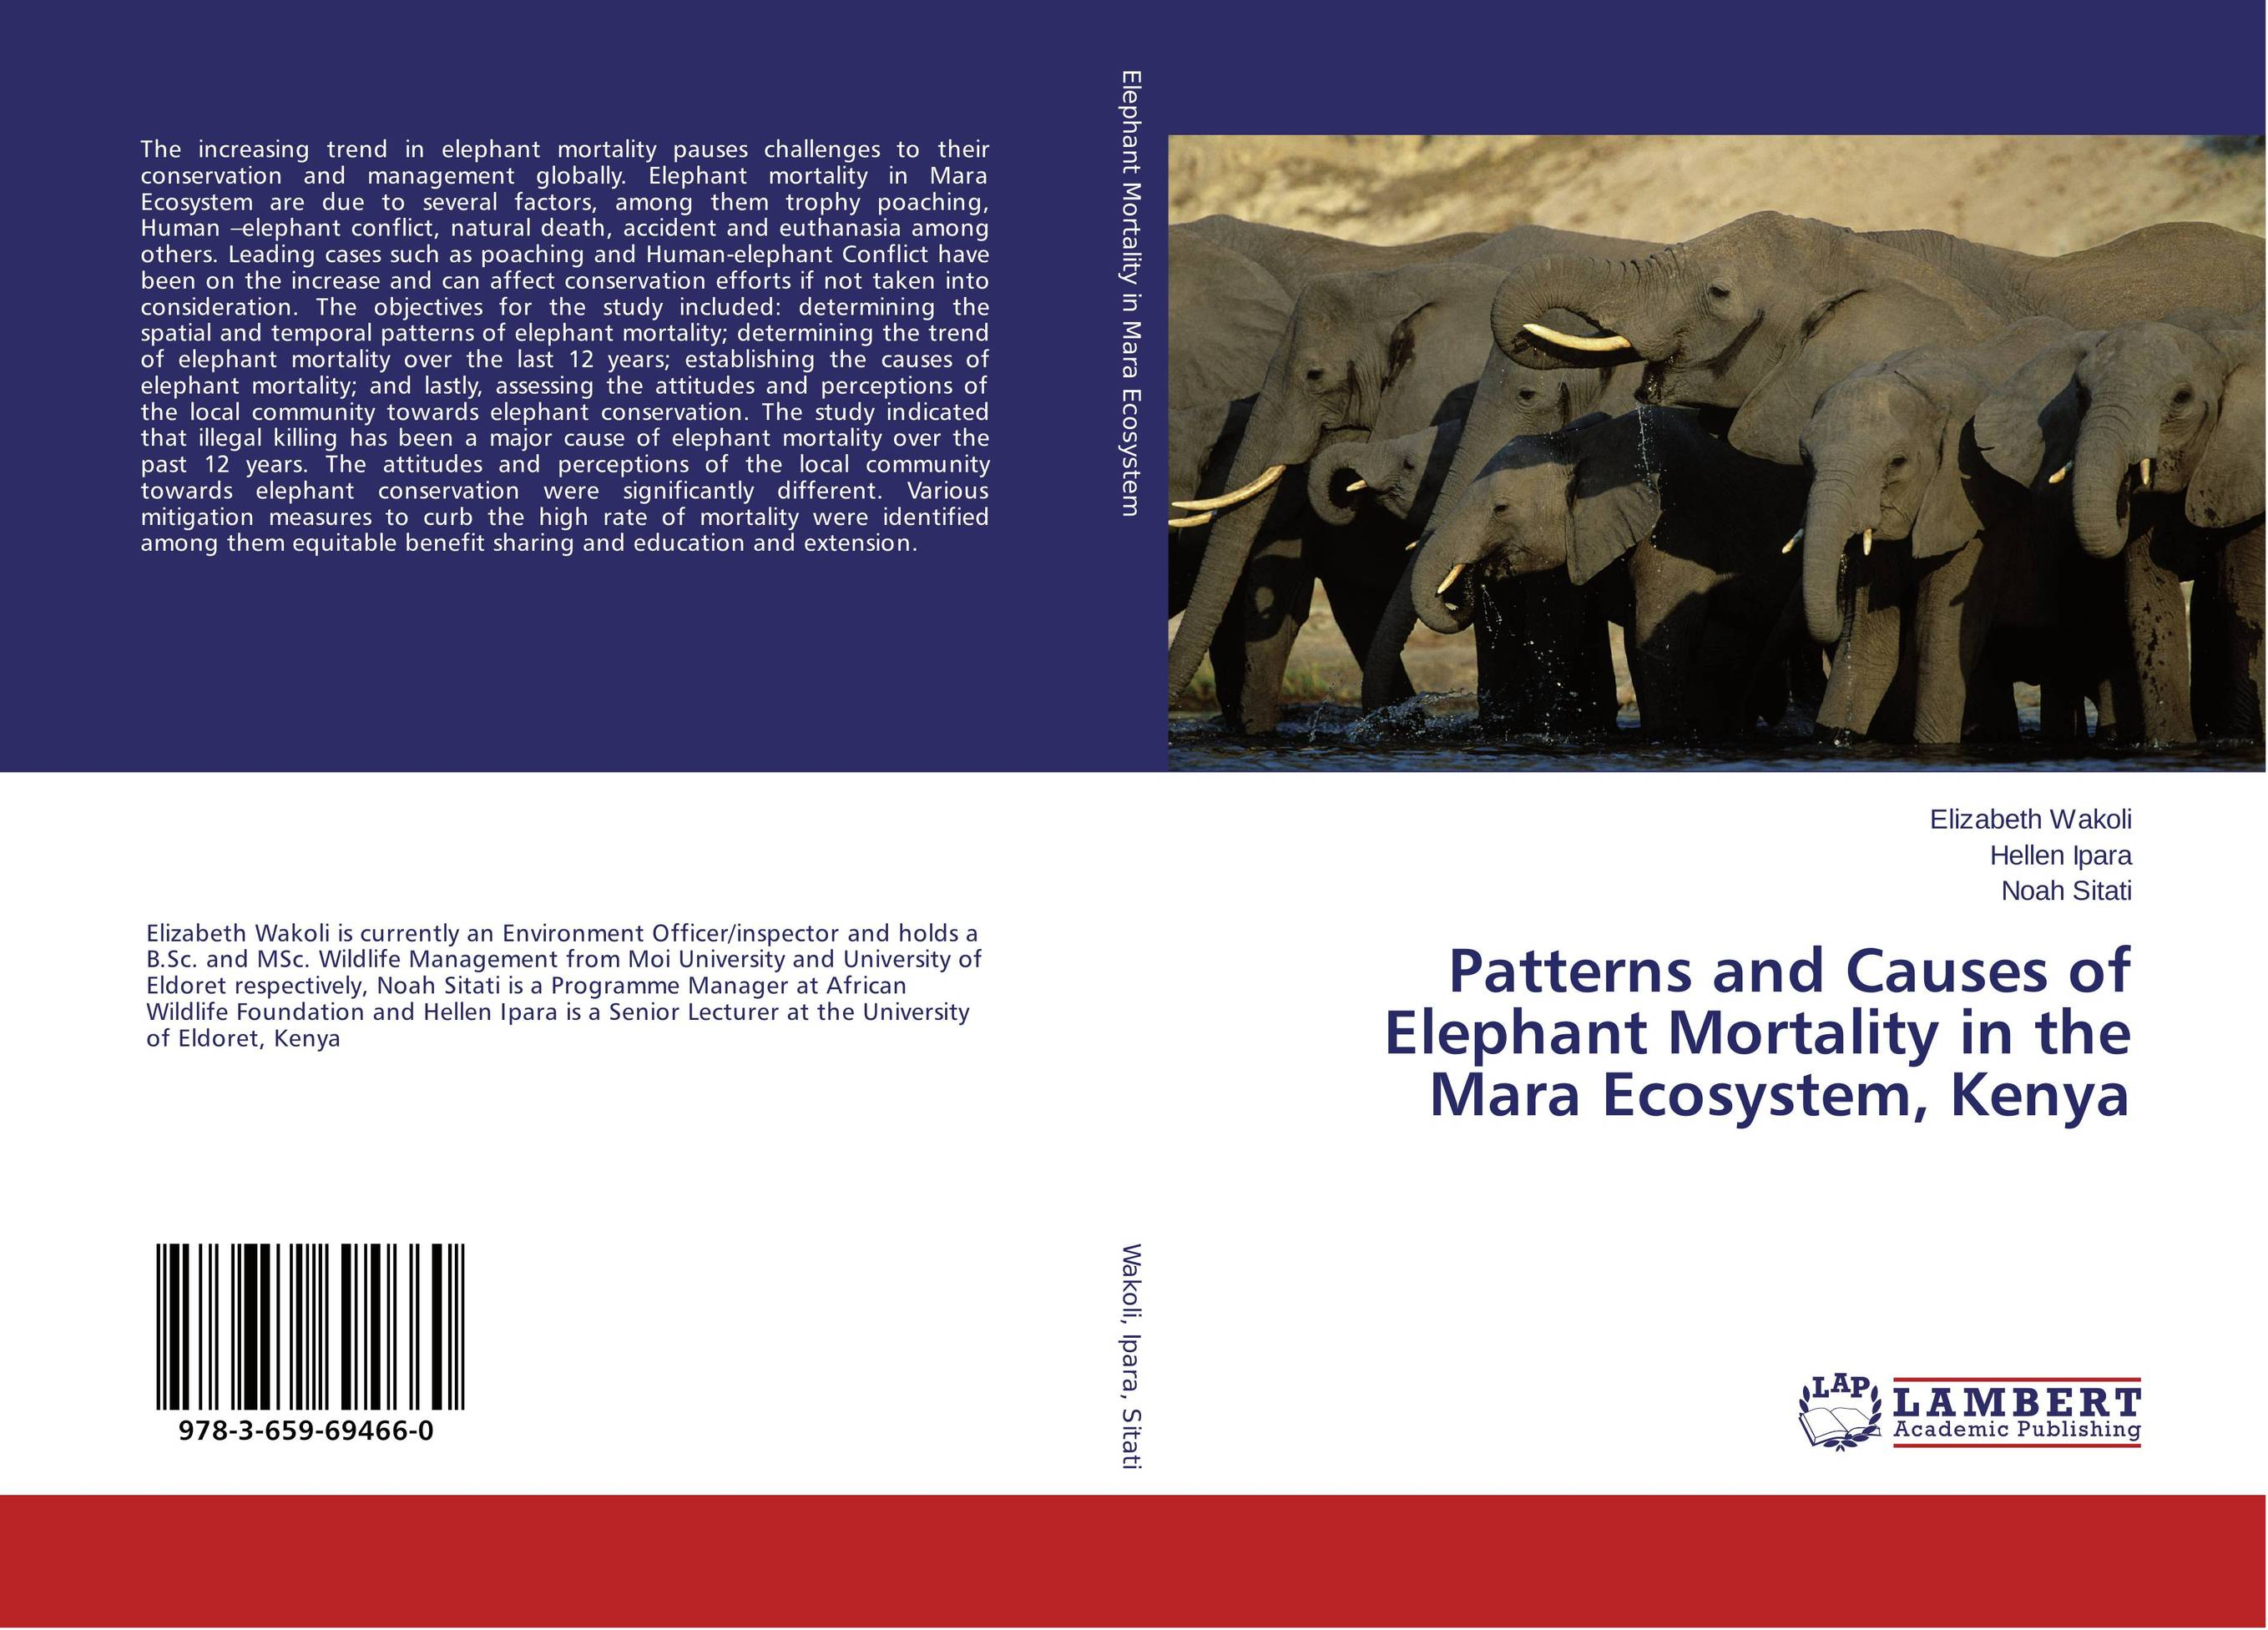 Patterns and Causes of Elephant Mortality in the Mara Ecosystem, Kenya max mara ma994dwthn29